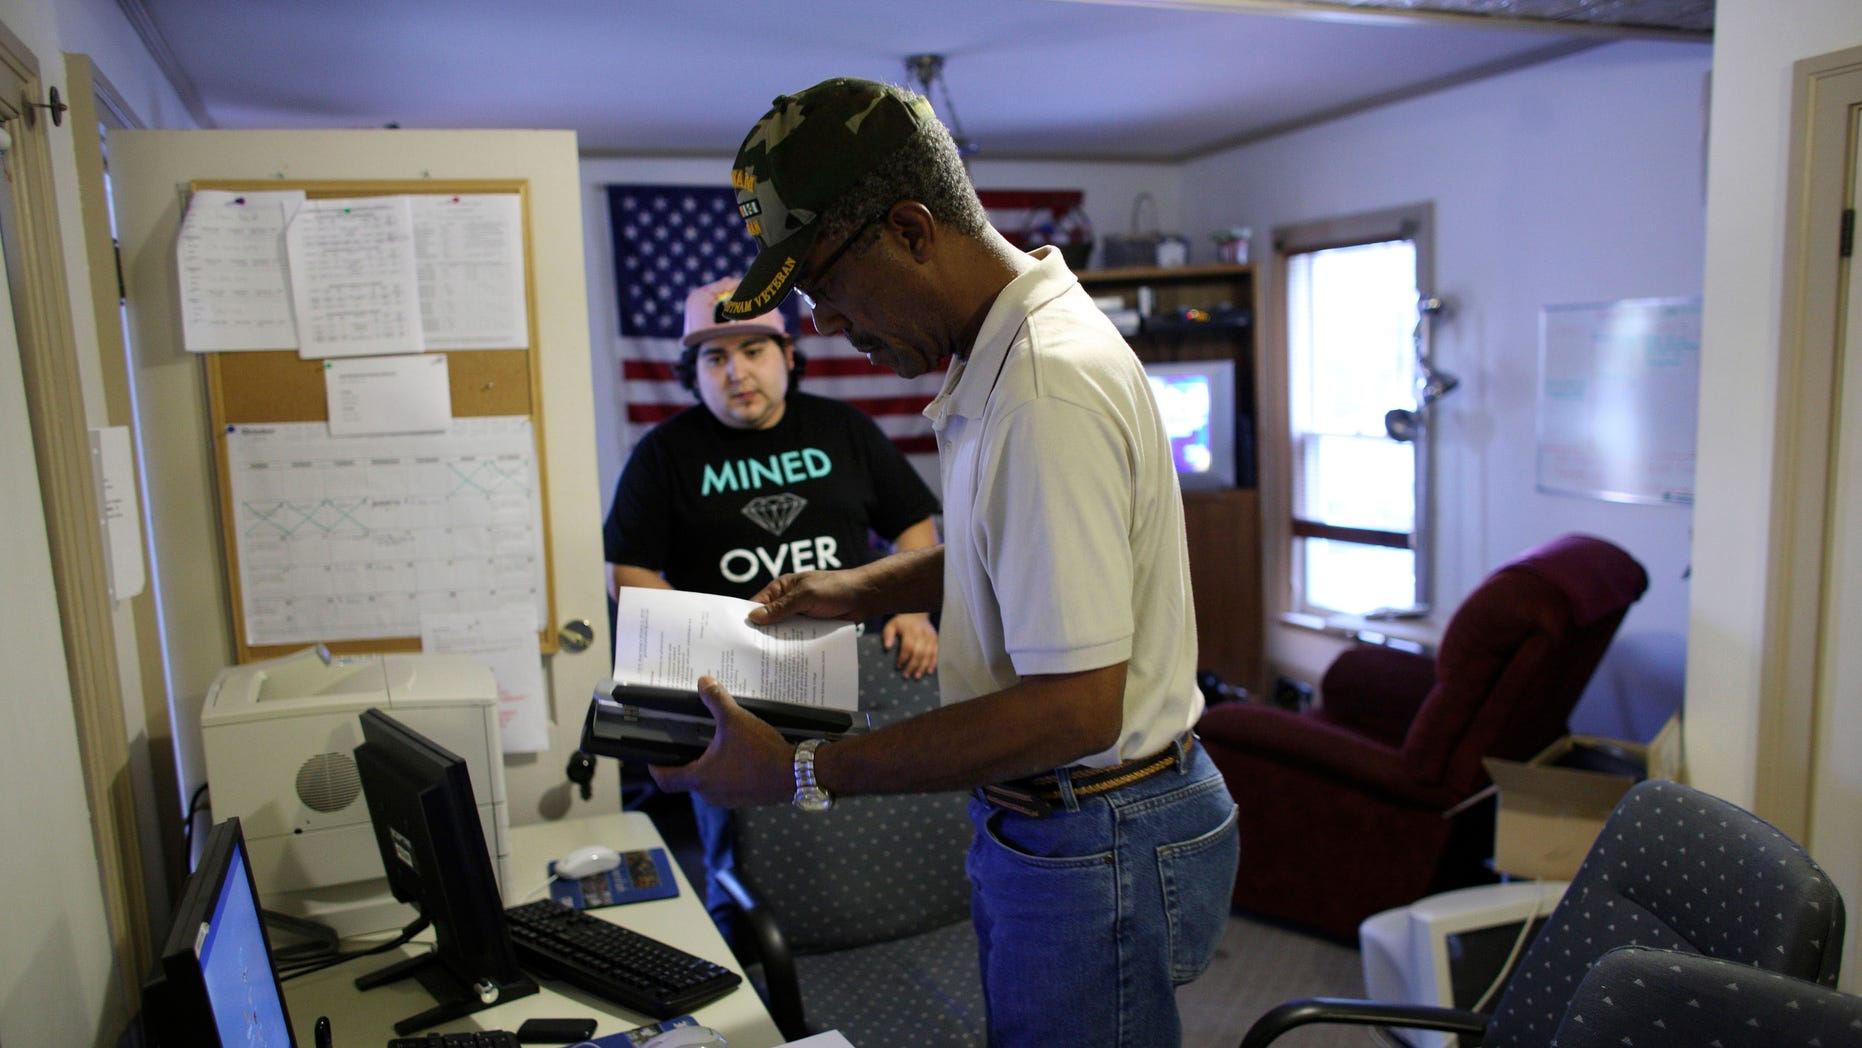 FILE: Undated: A military veteran gets help with his resume from an Iraq war veteran at the Midwest Shelter for Homeless Veterans in Wheaton, Illinois.